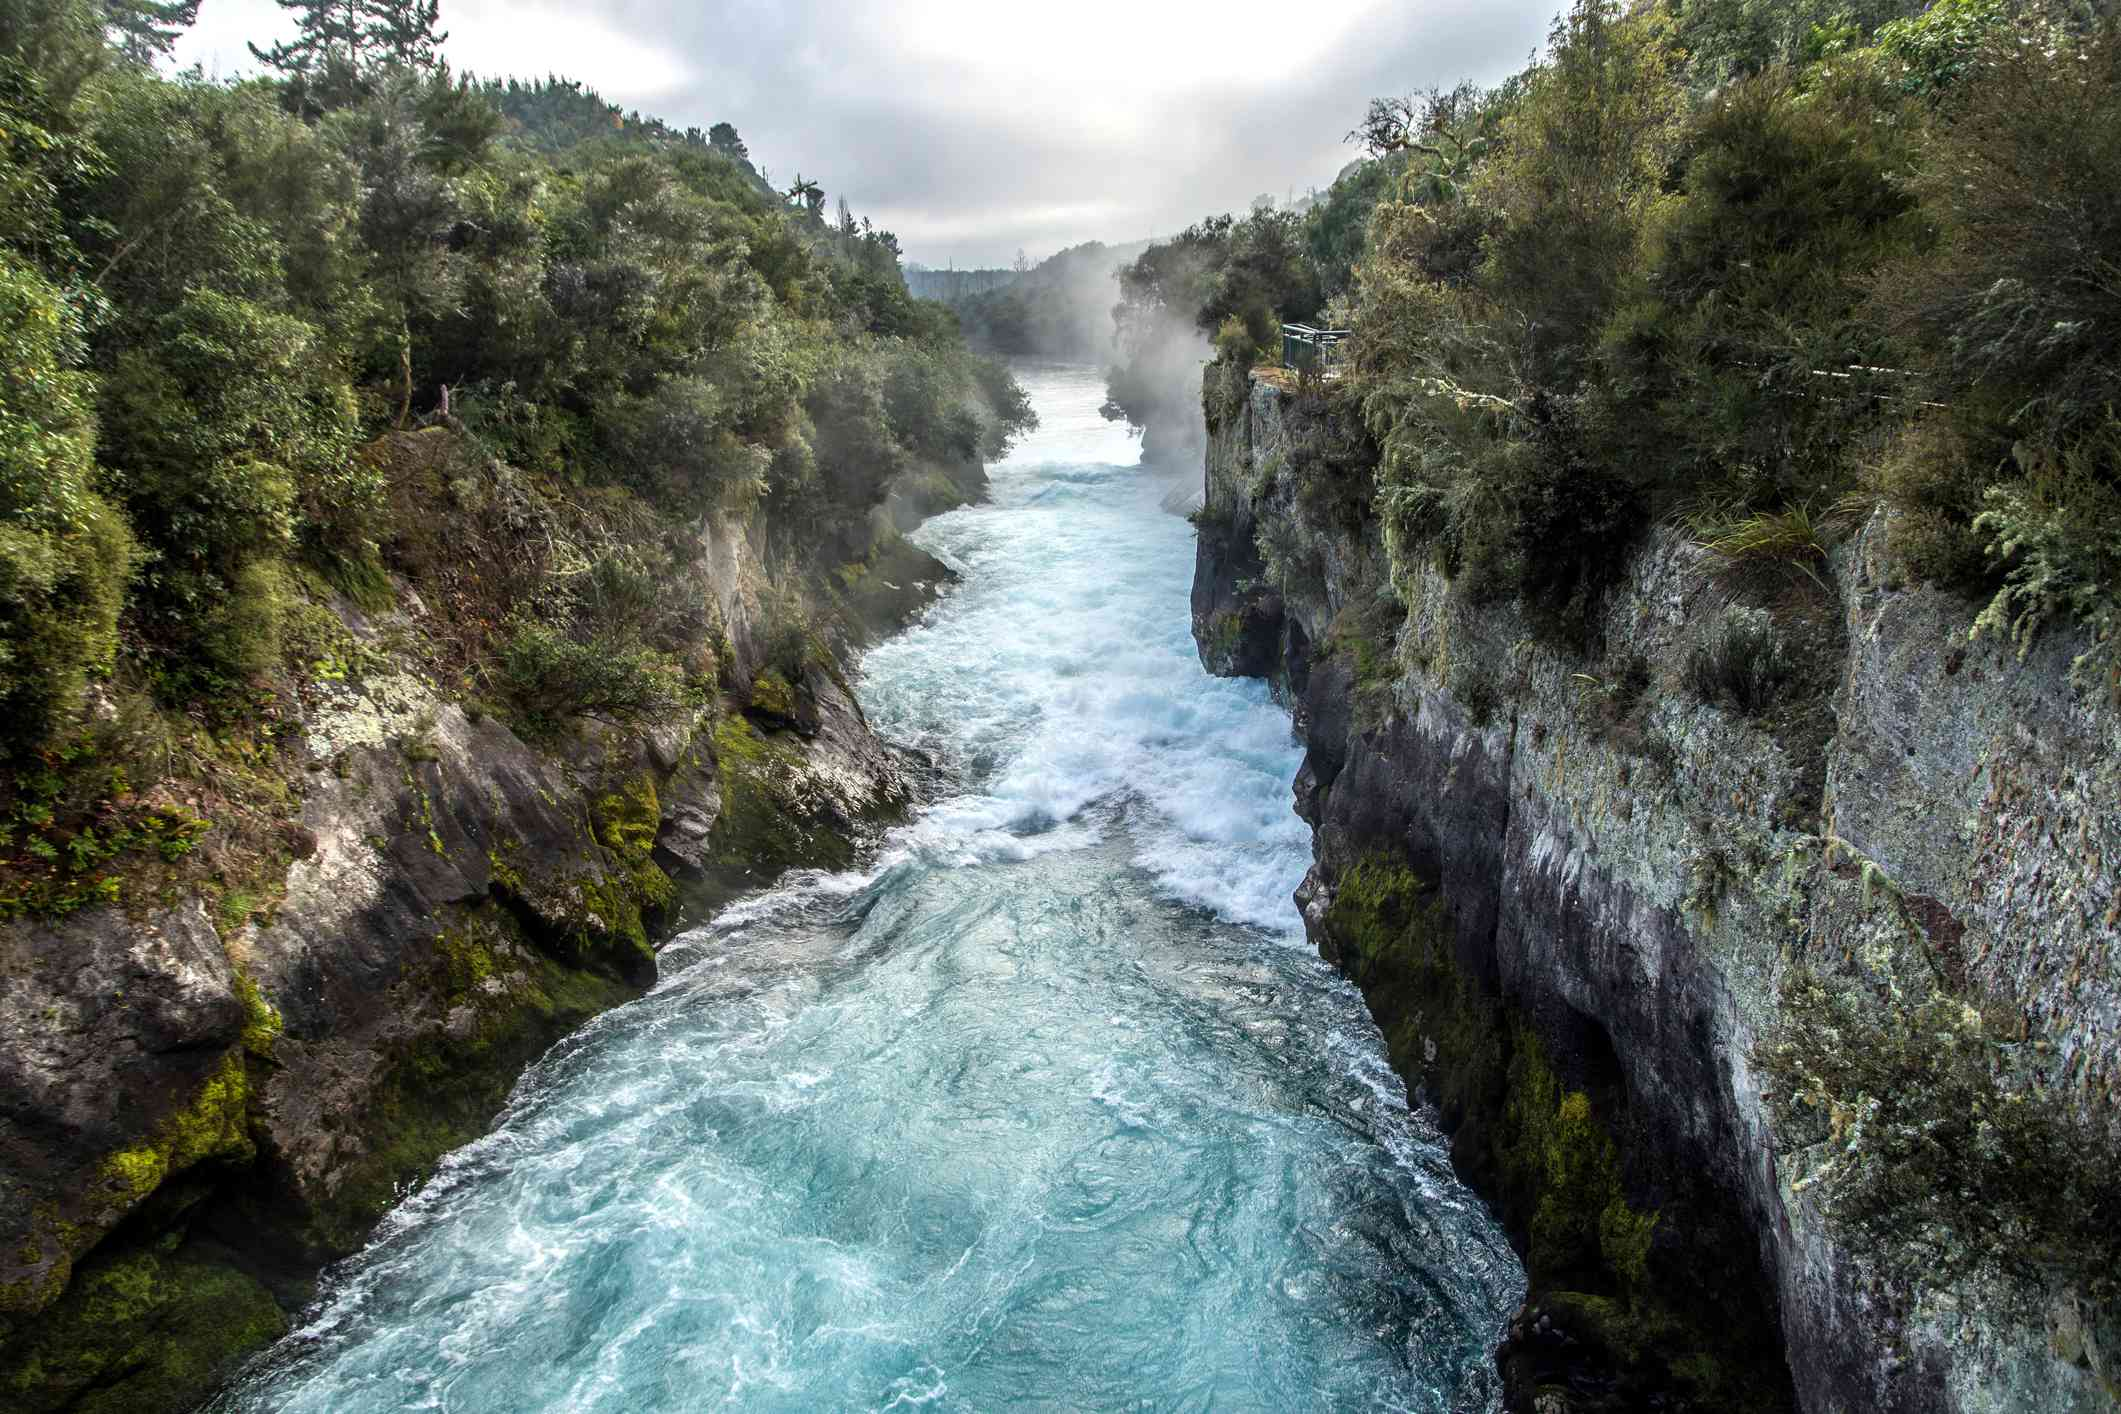 narrow canyon with blue and white waters of a river rushing through